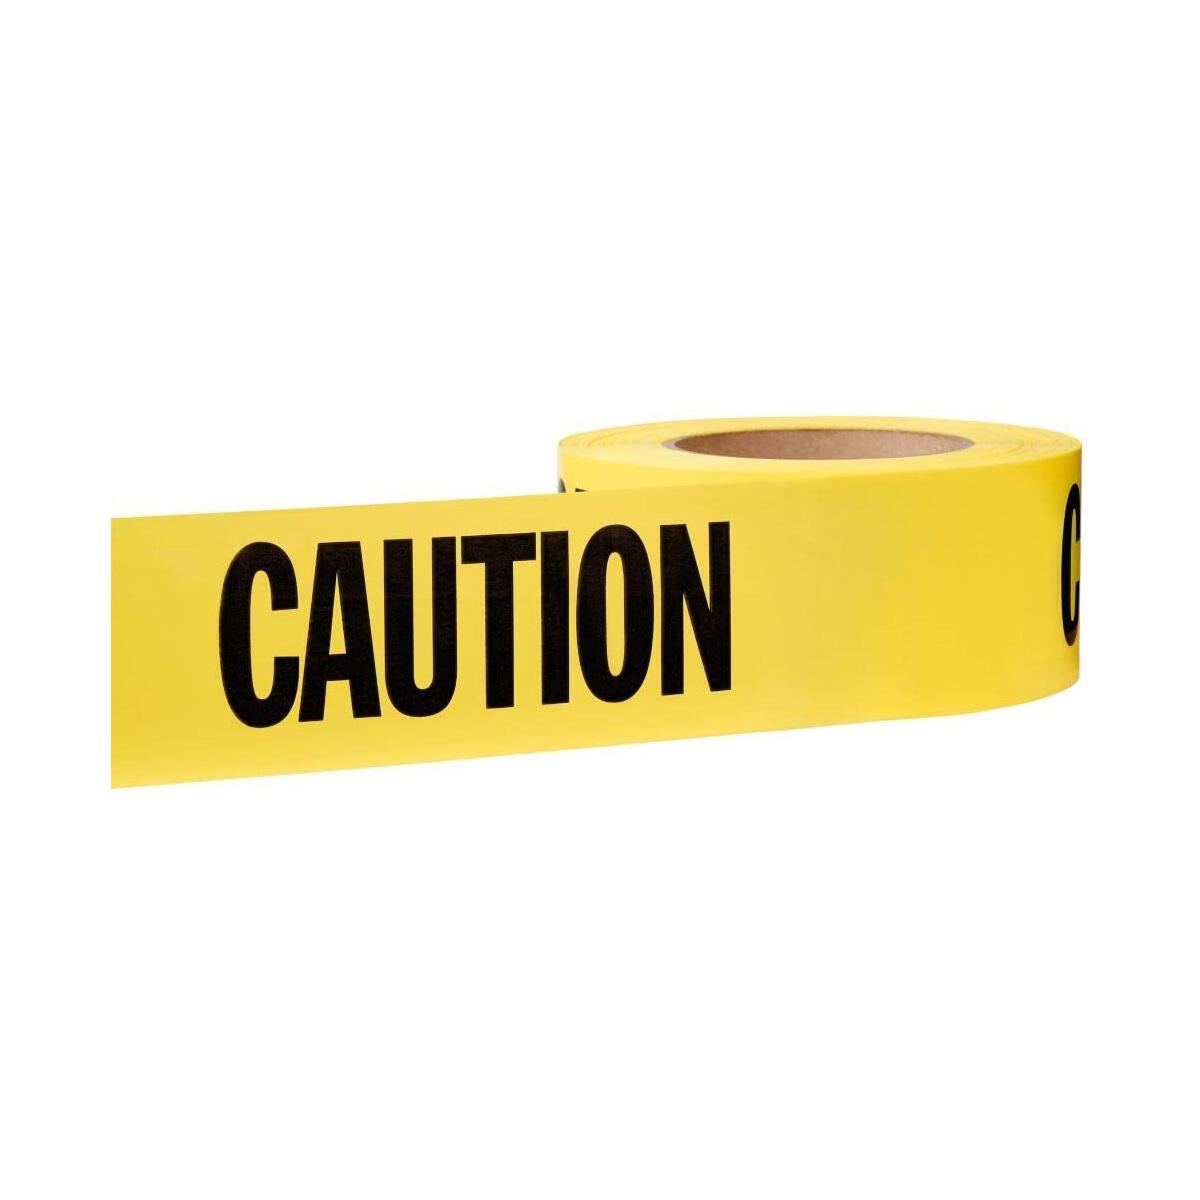 Premium Grade Vivid Yellow Caution Tape, Large 3 Inch Wide x 1000 Feet Long, Thick & Durable, Bright Yellow Ribbon & Bold Black Text, Warning Tape with Maximum Readability, For Danger/Hazardous Areas